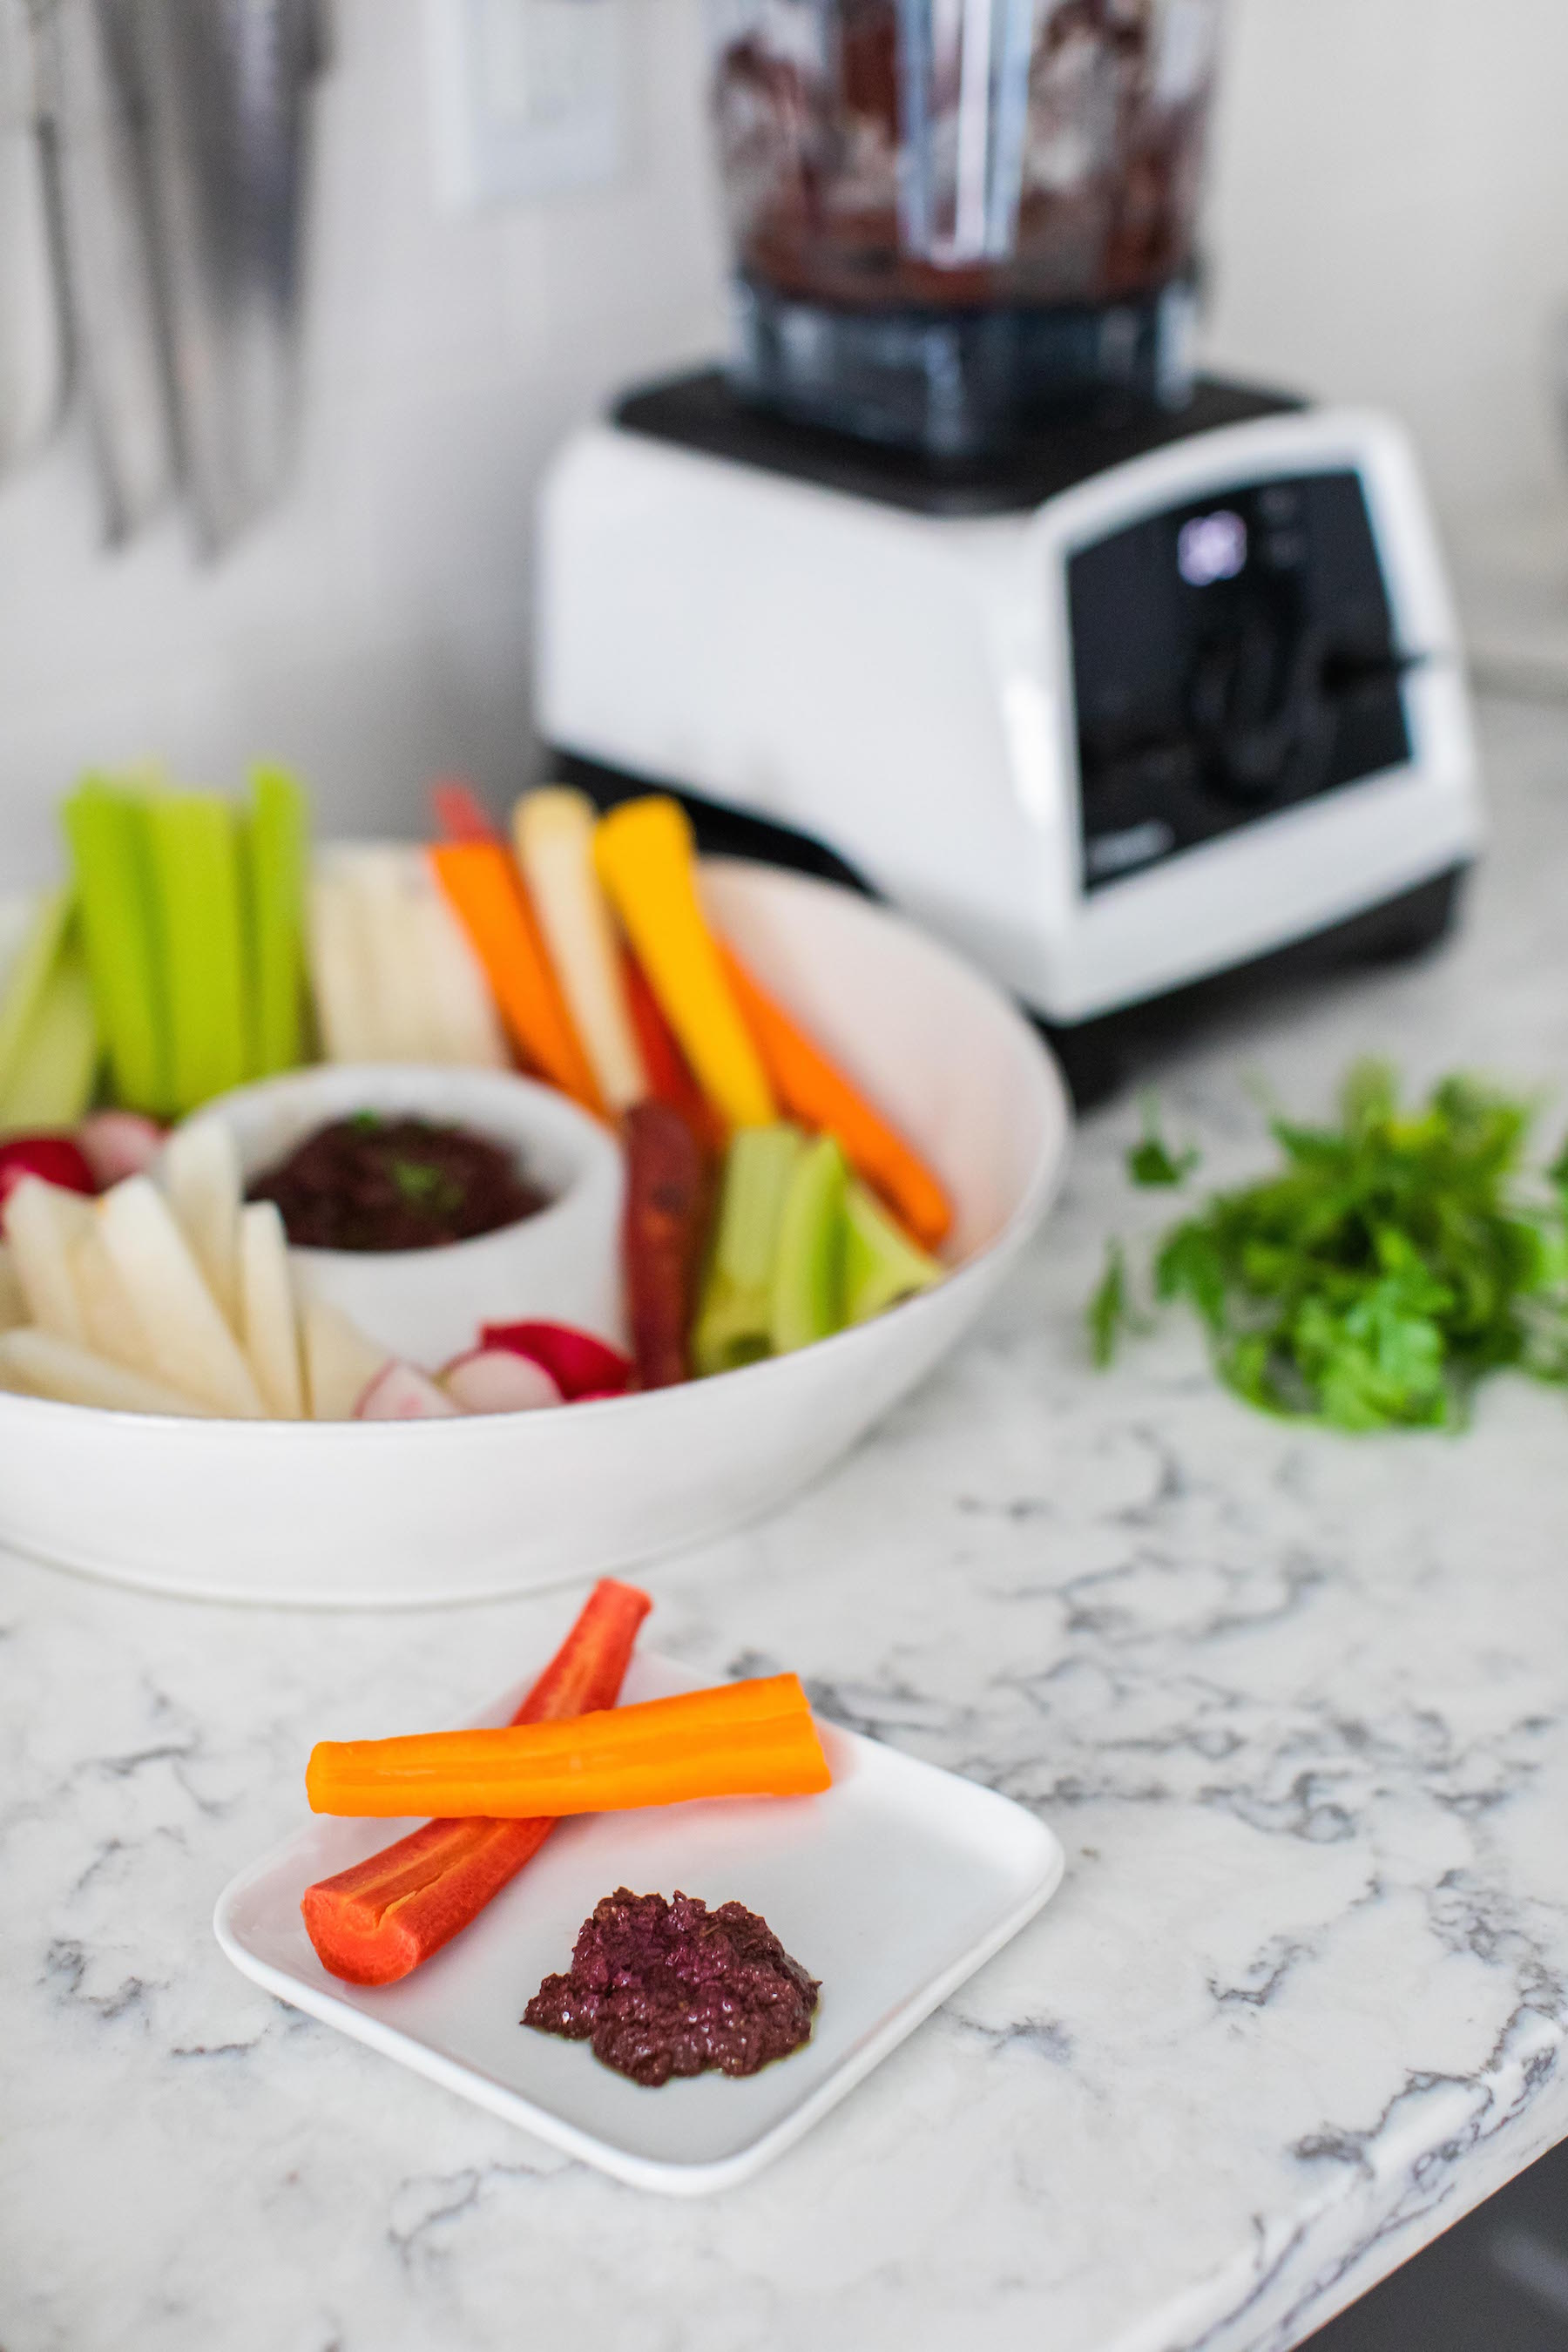 Caramelized_Vitamix-12.jpg